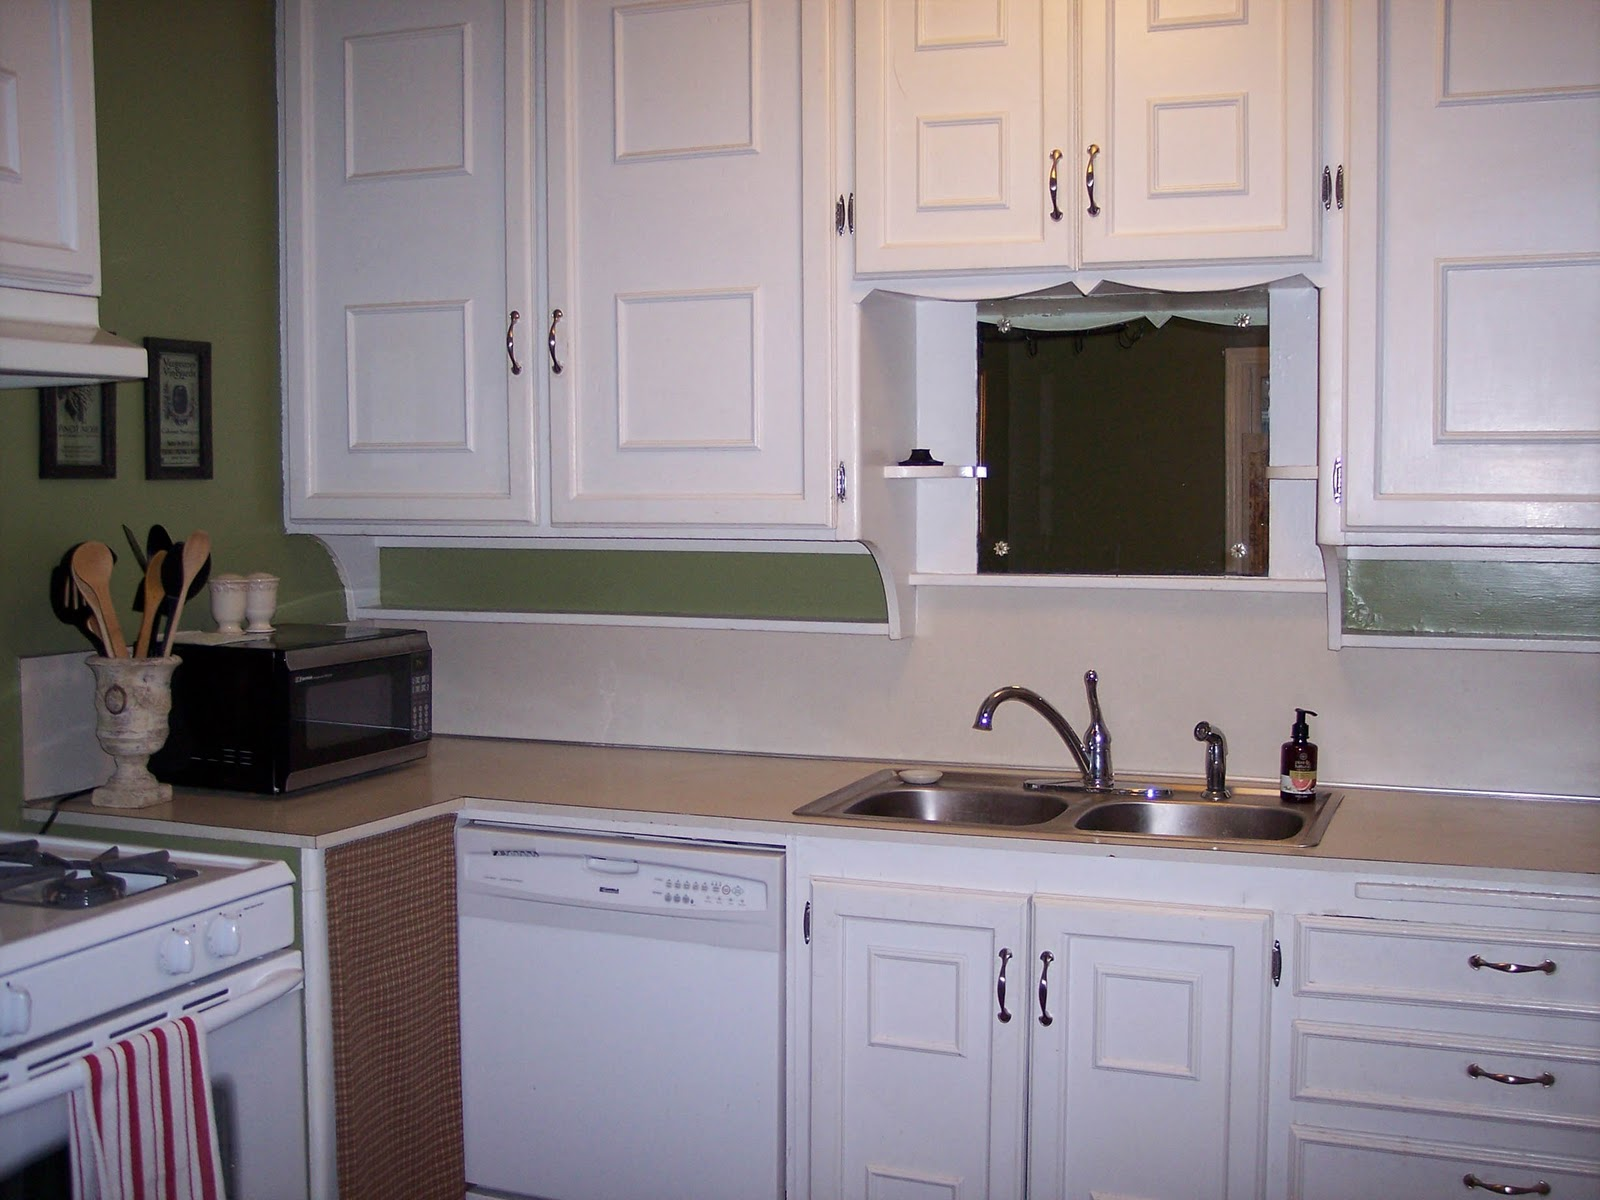 Molding - Kitchen Cabinet Doors and Kitchen Cabinet Refacing